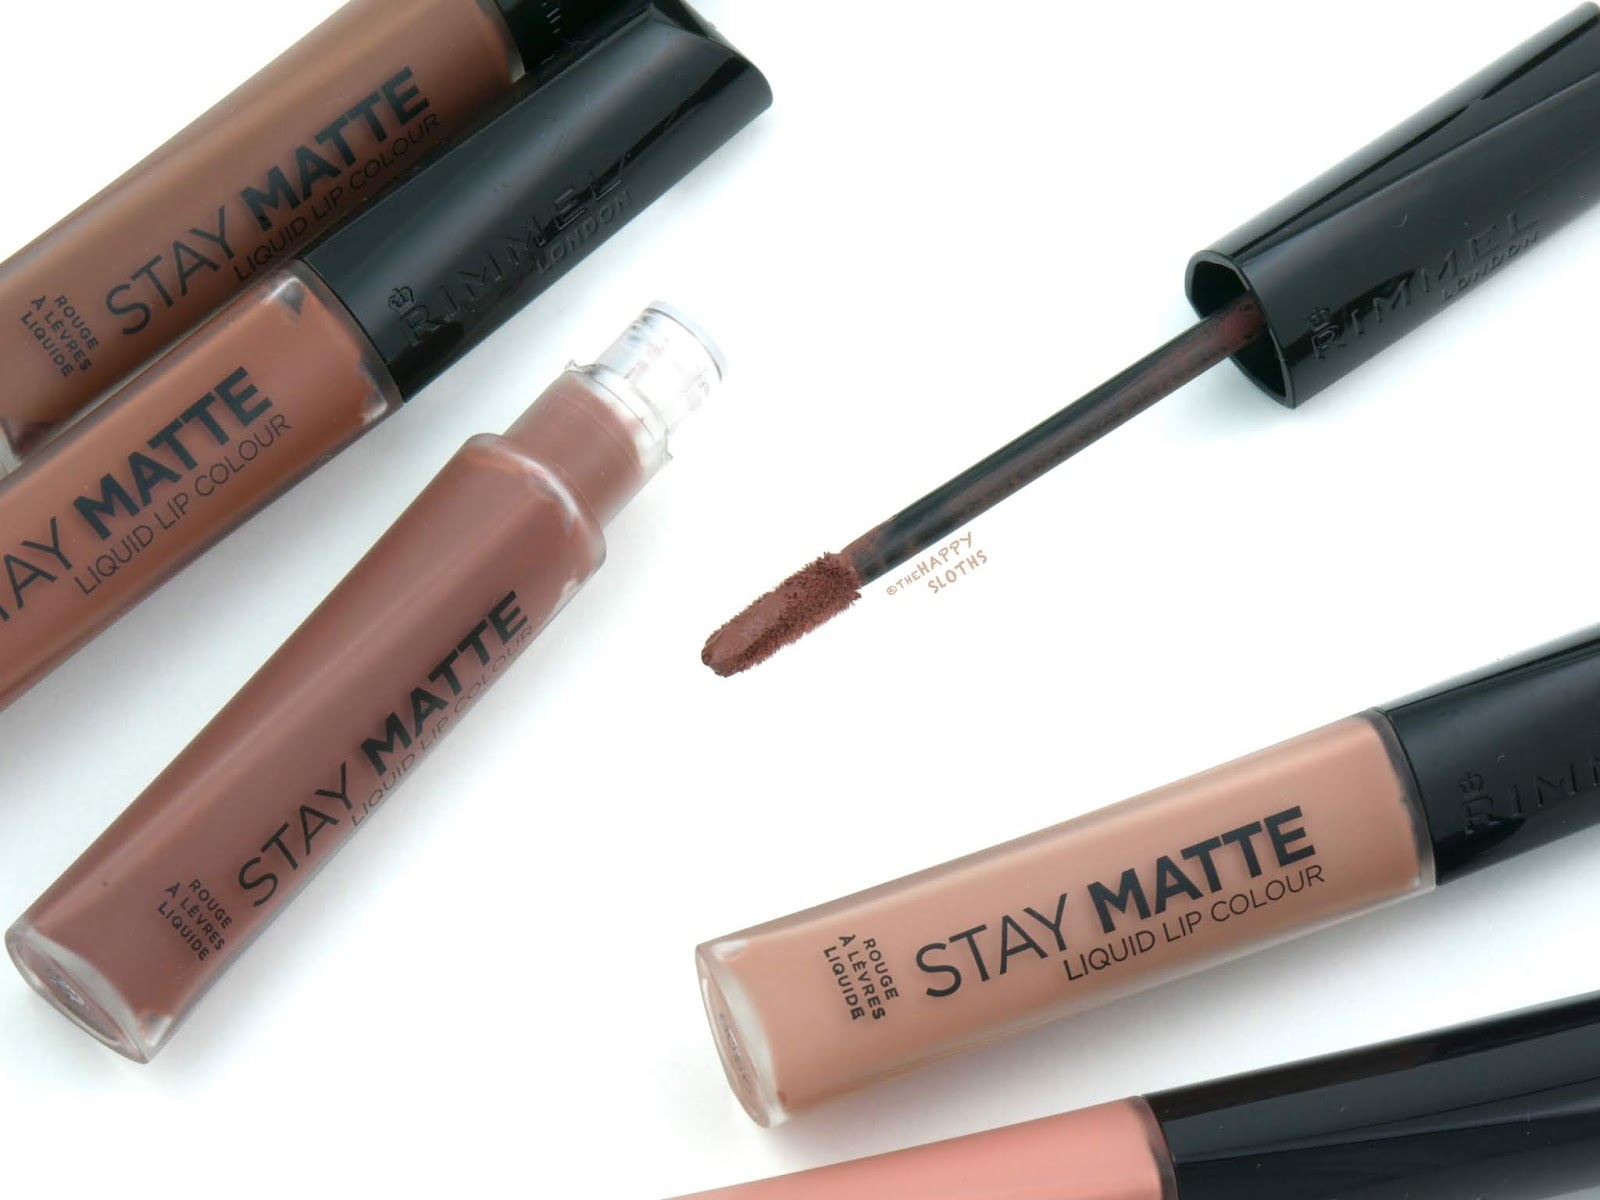 Rimmel London | *NEW SHADES* Stay Matte Liquid Lip Colour: Review and Swatches